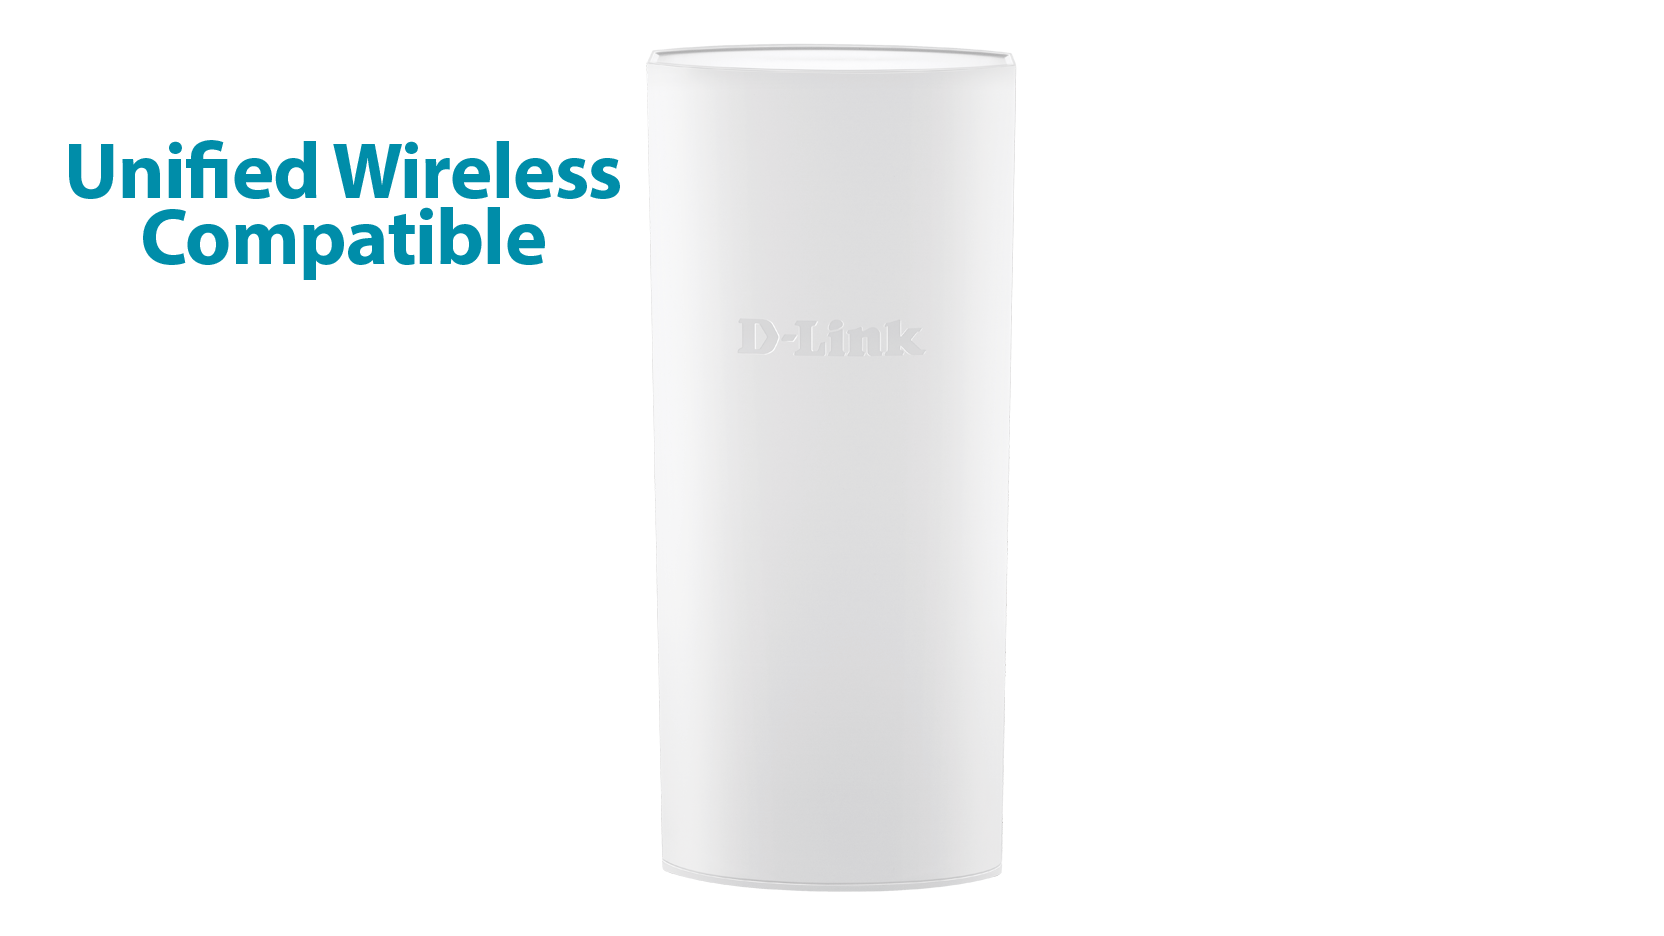 DWL-6700AP Wireless Dual-Band Outdoor Unified Access Point